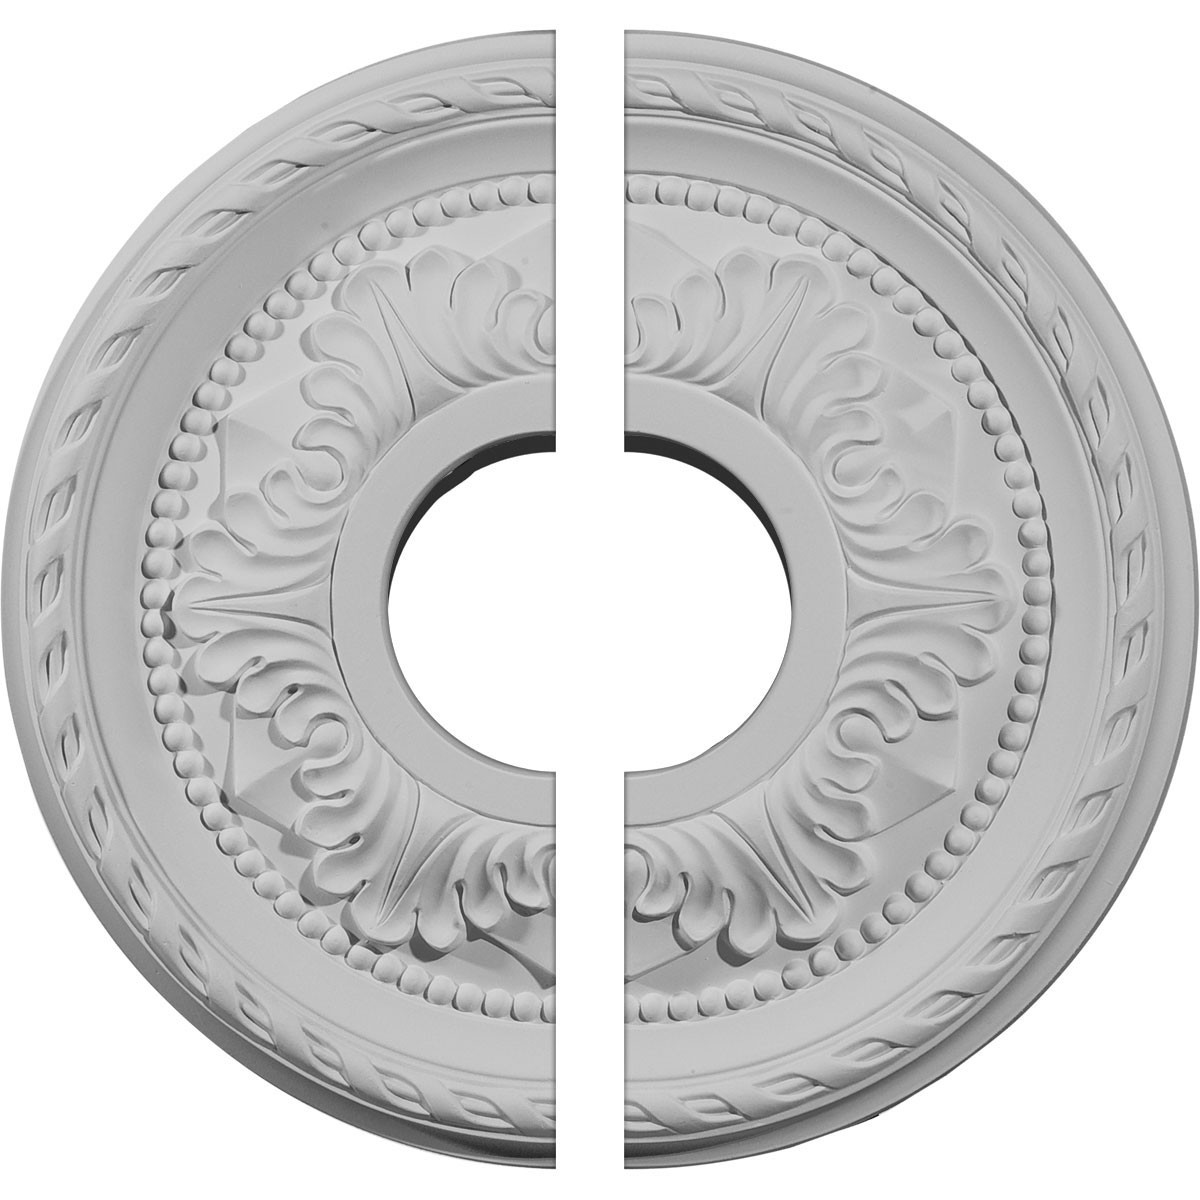 """EM-CM12PM2 - 12 1/8""""OD x 3 1/2""""ID x 1""""P Palmetto Ceiling Medallion, Two Piece (Fits Canopies up to 4 7/8"""")"""